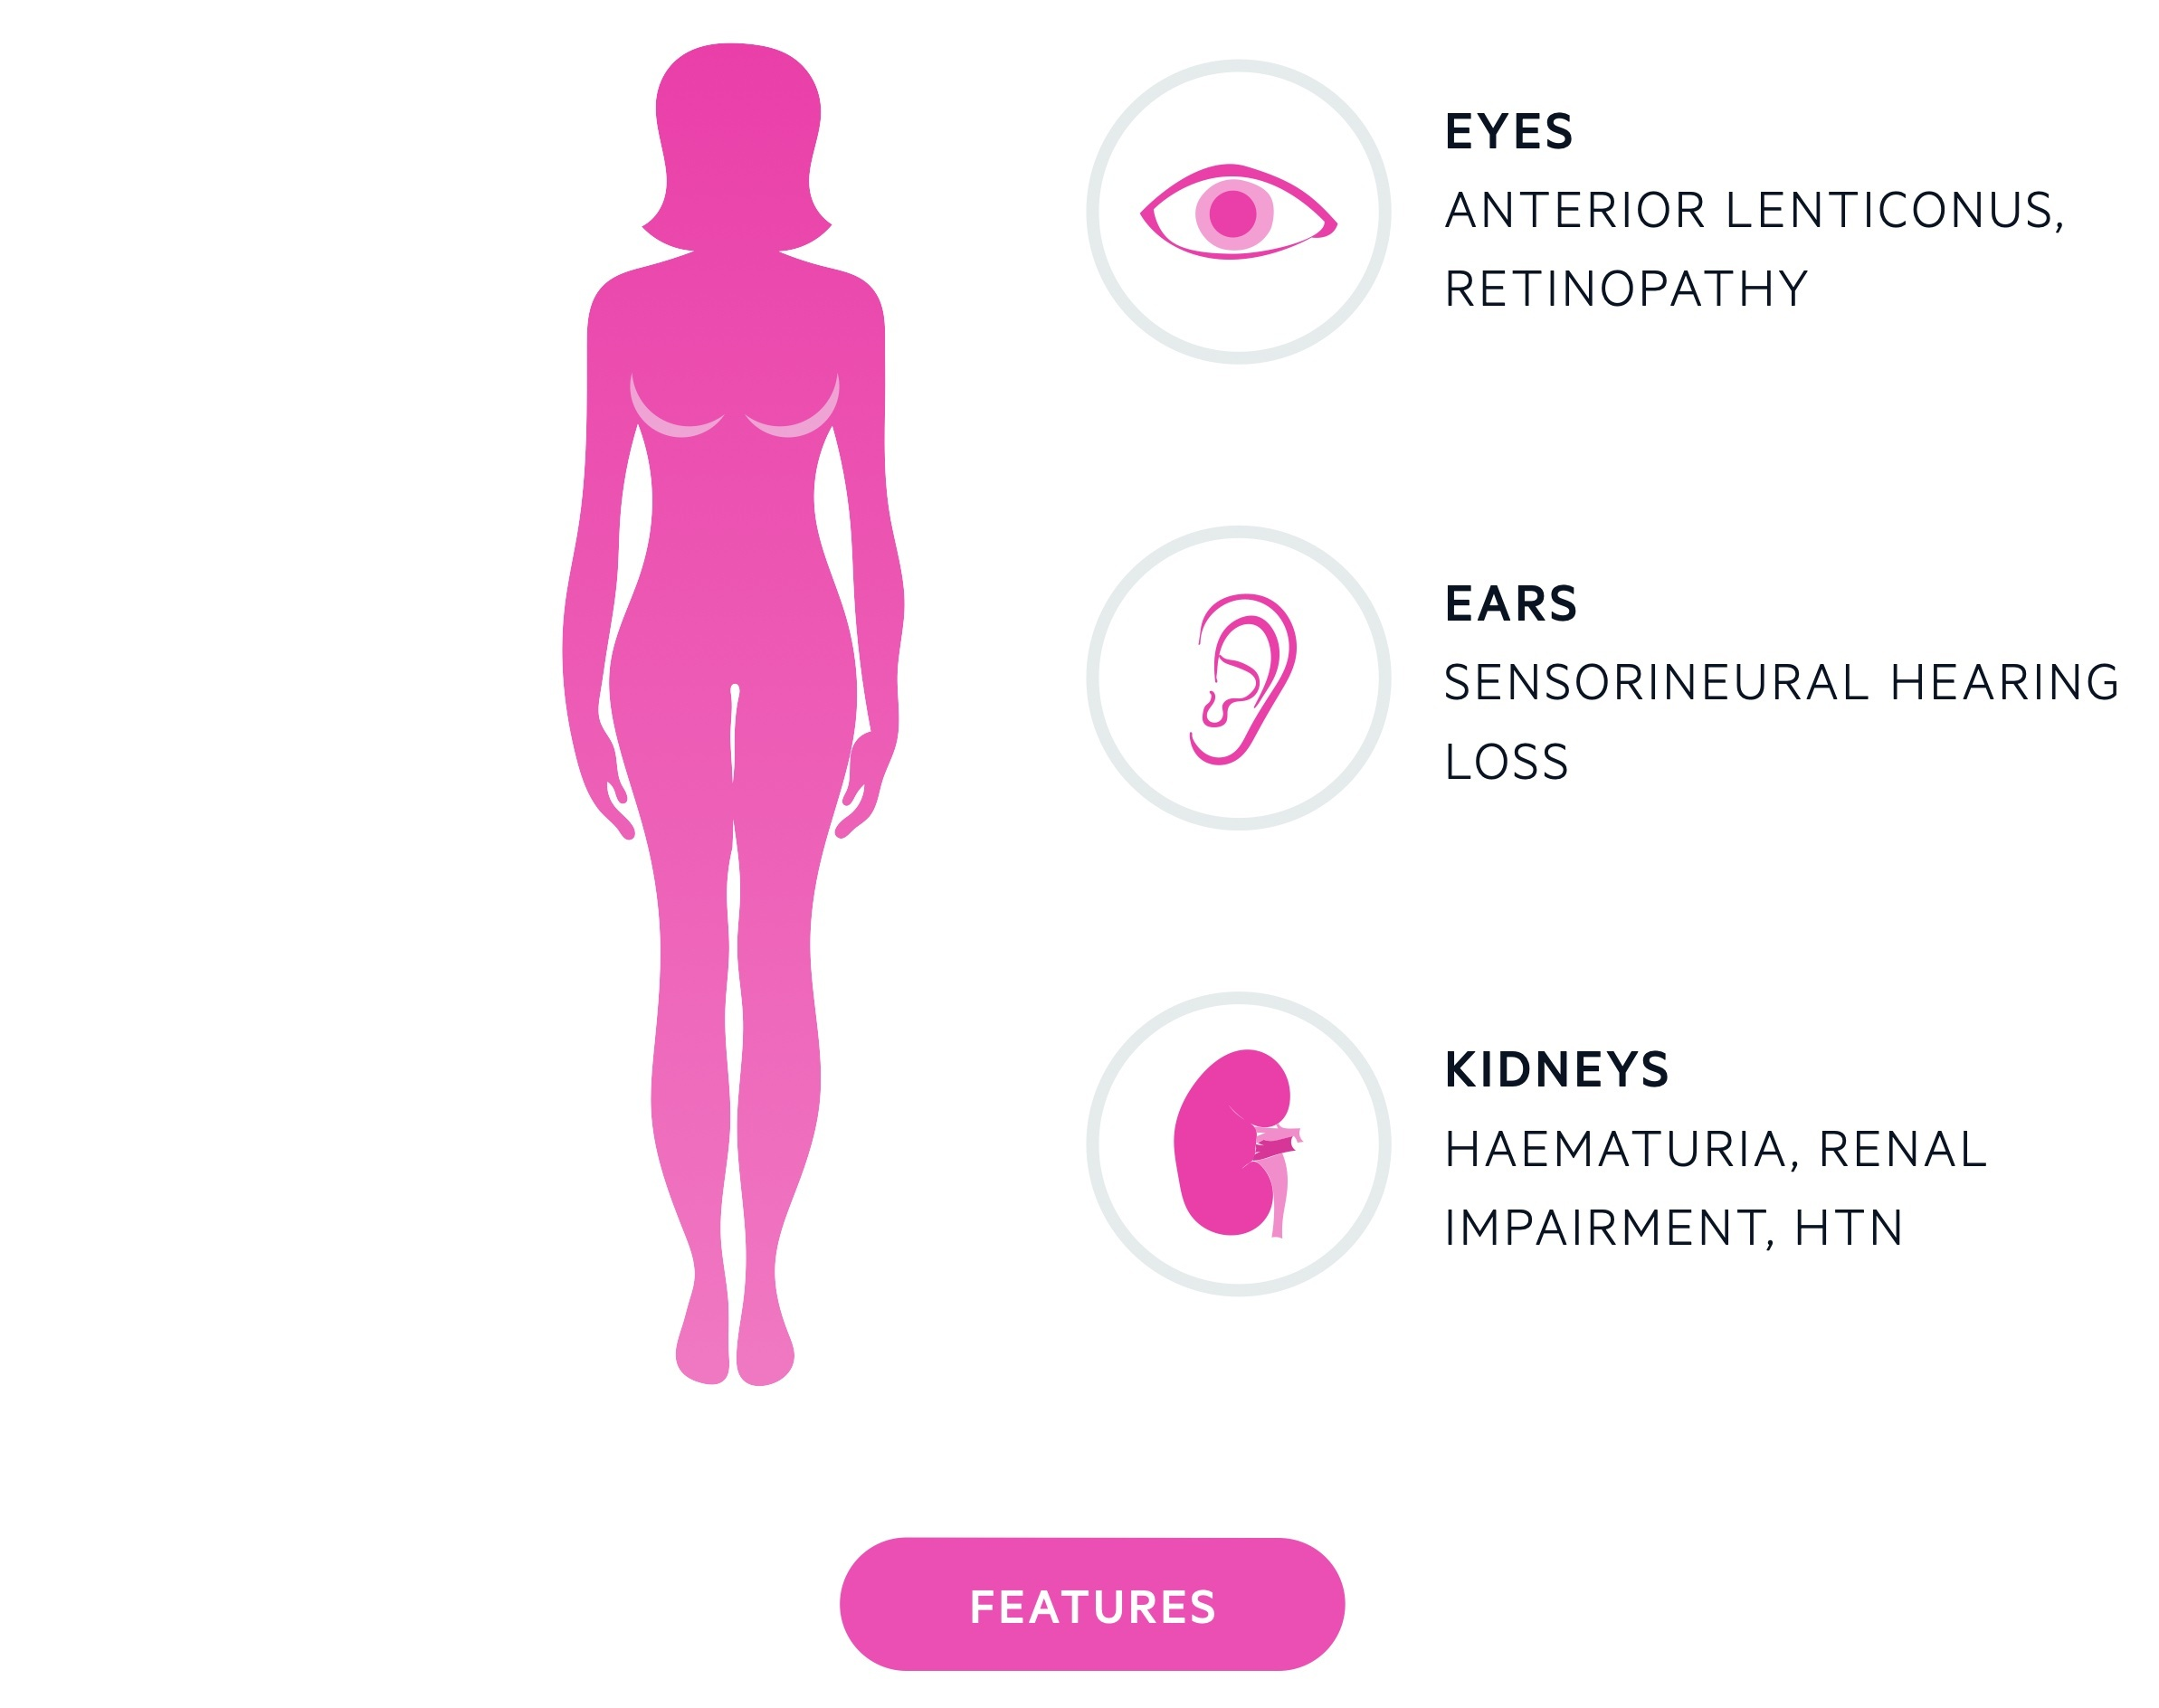 Features of Alport's syndrome